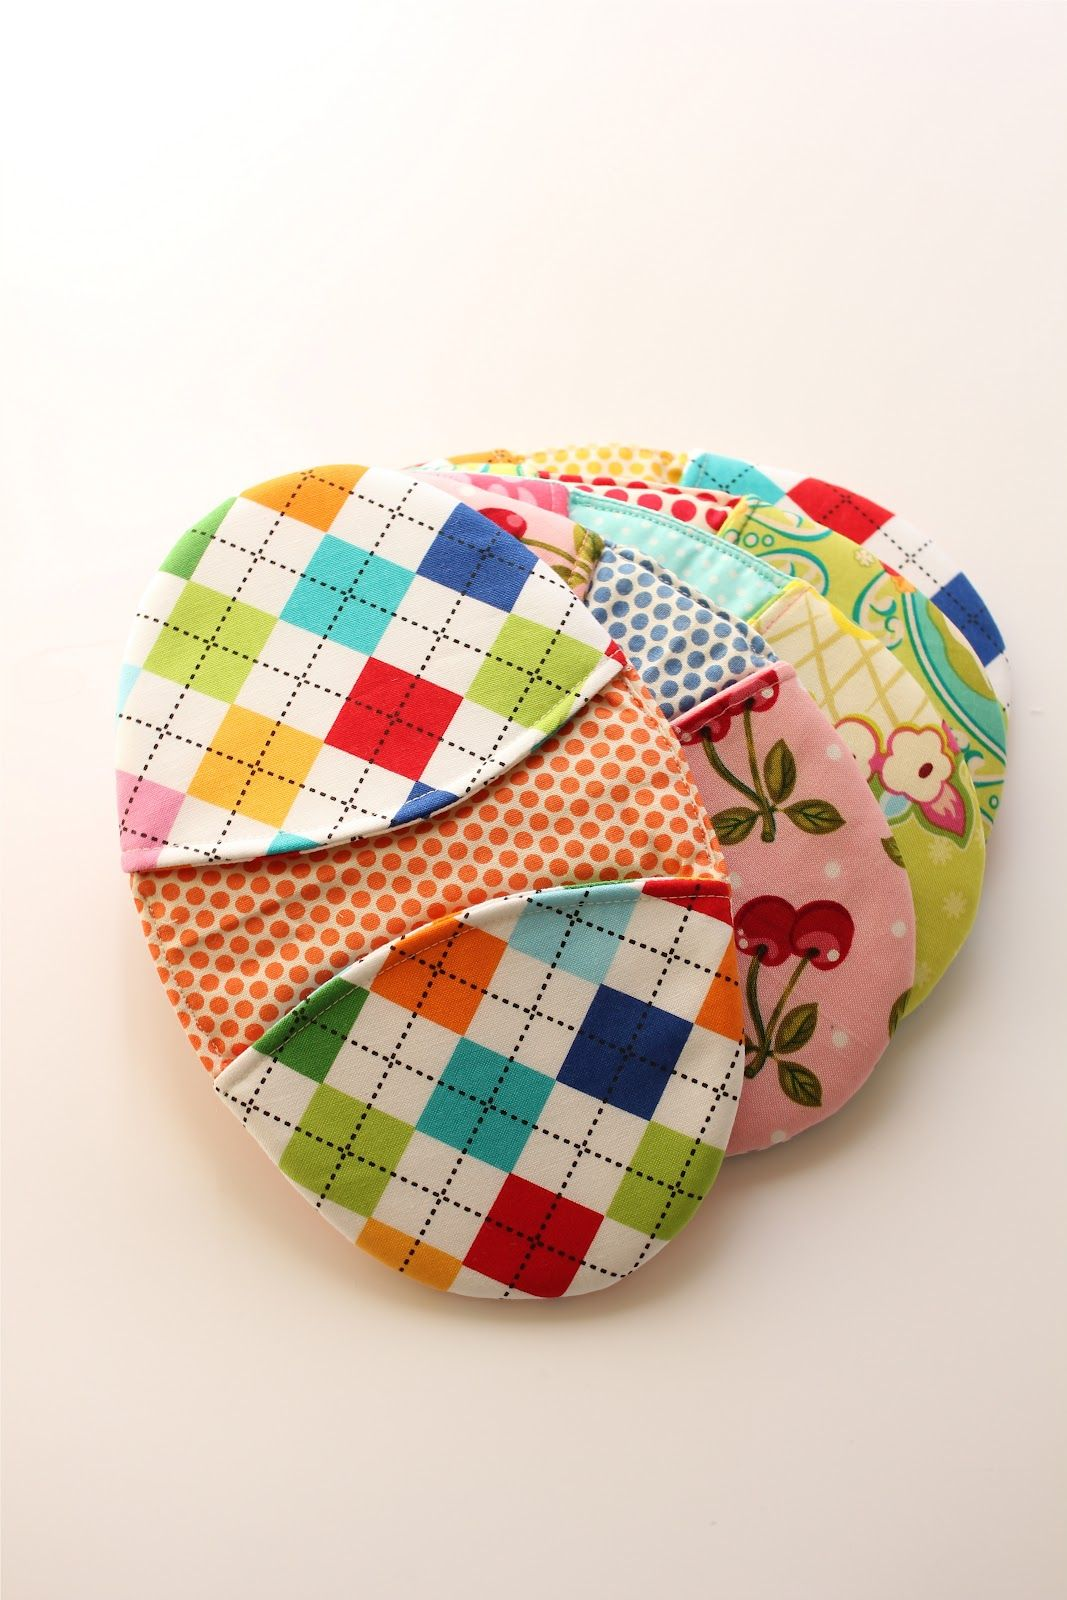 Pot holder tutorial great tutorial and pattern i like these a miss mary sewing classes diy tutorial easter pot holder handmade inspiration sew crafty negle Image collections